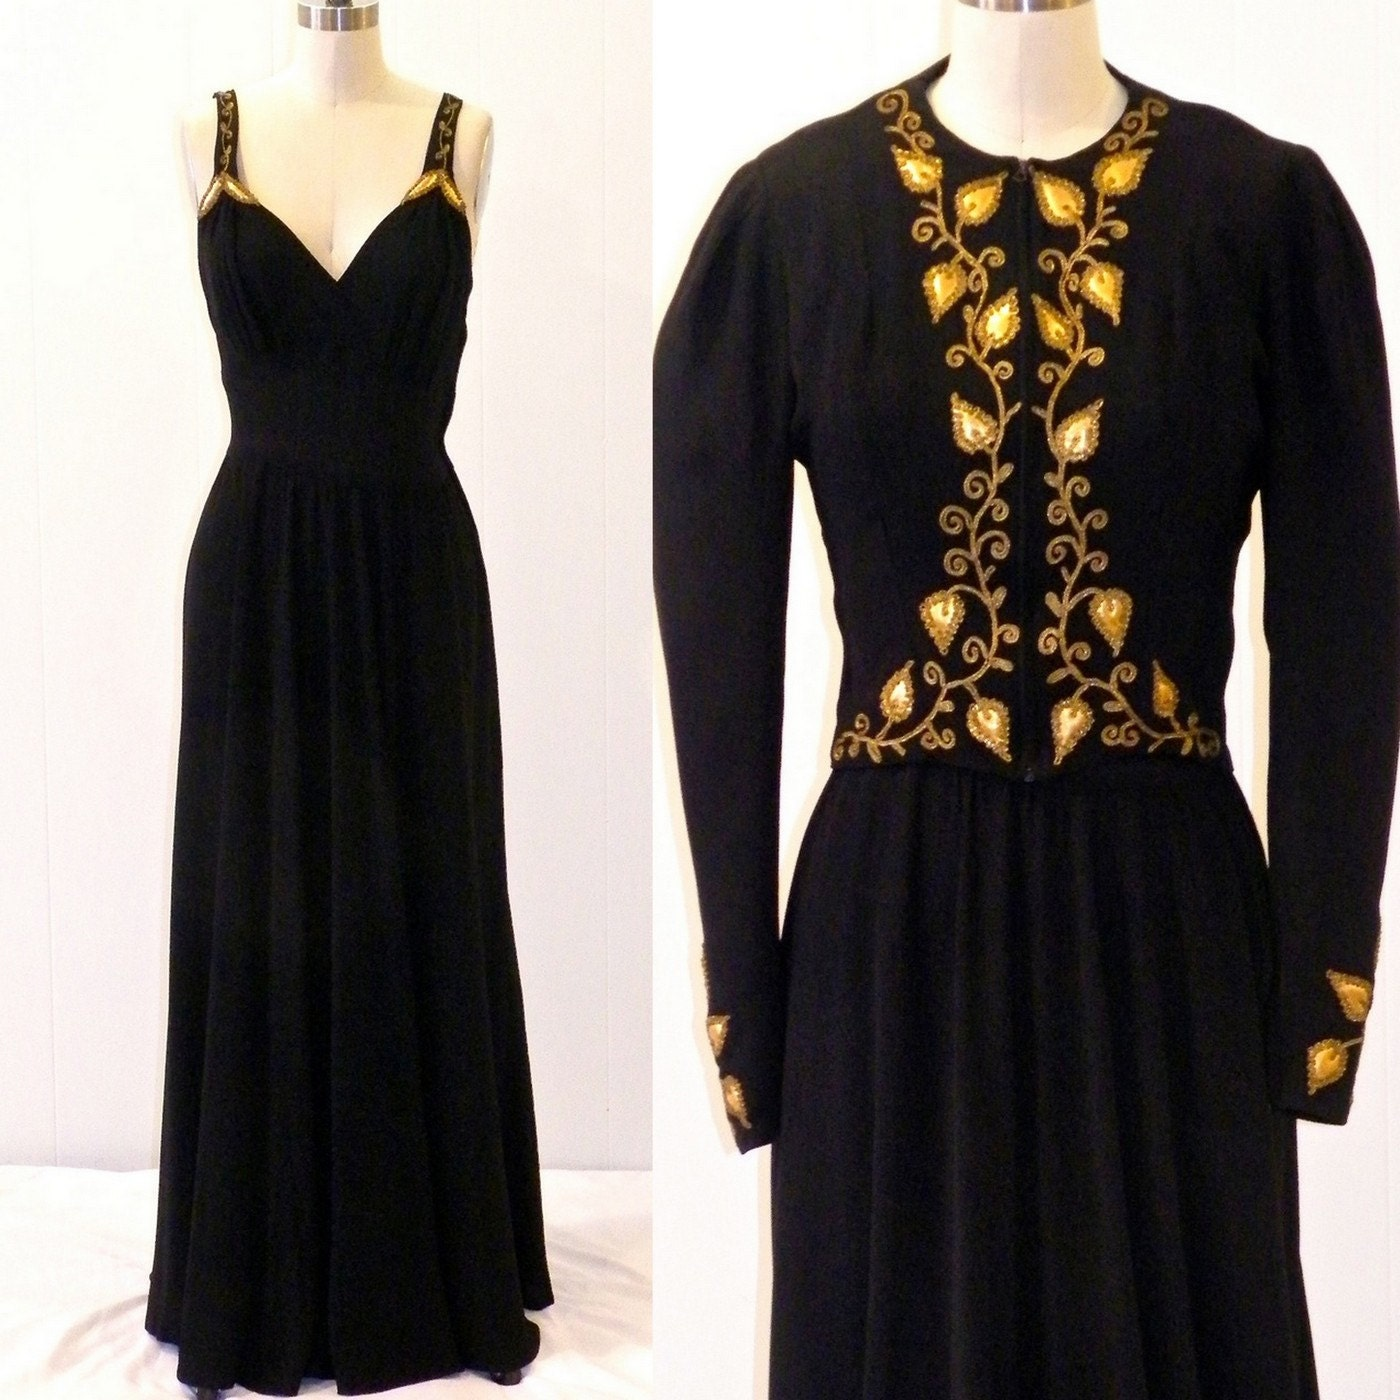 1930s Evening Dress & Jacket 30s Art Deco Gown By